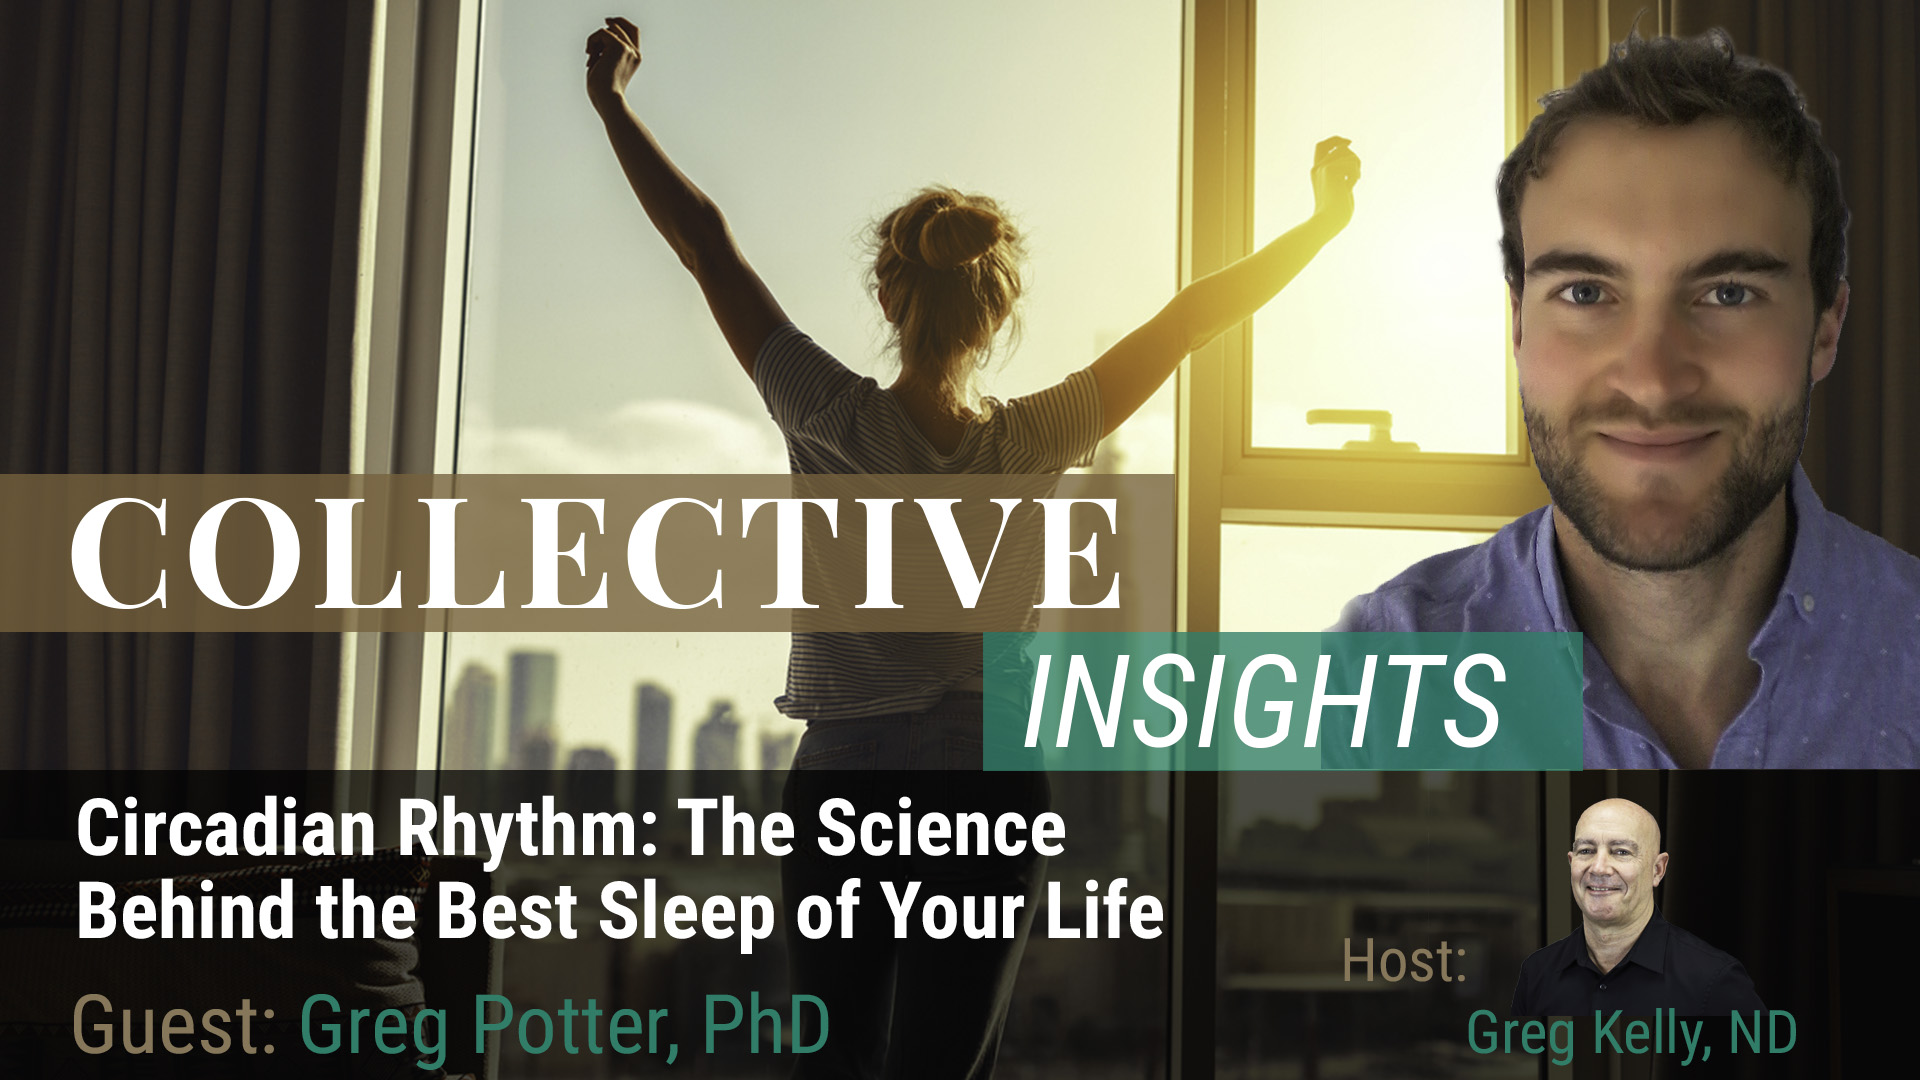 Circadian Rhythm: The Science Behind the Best Sleep of Your Life